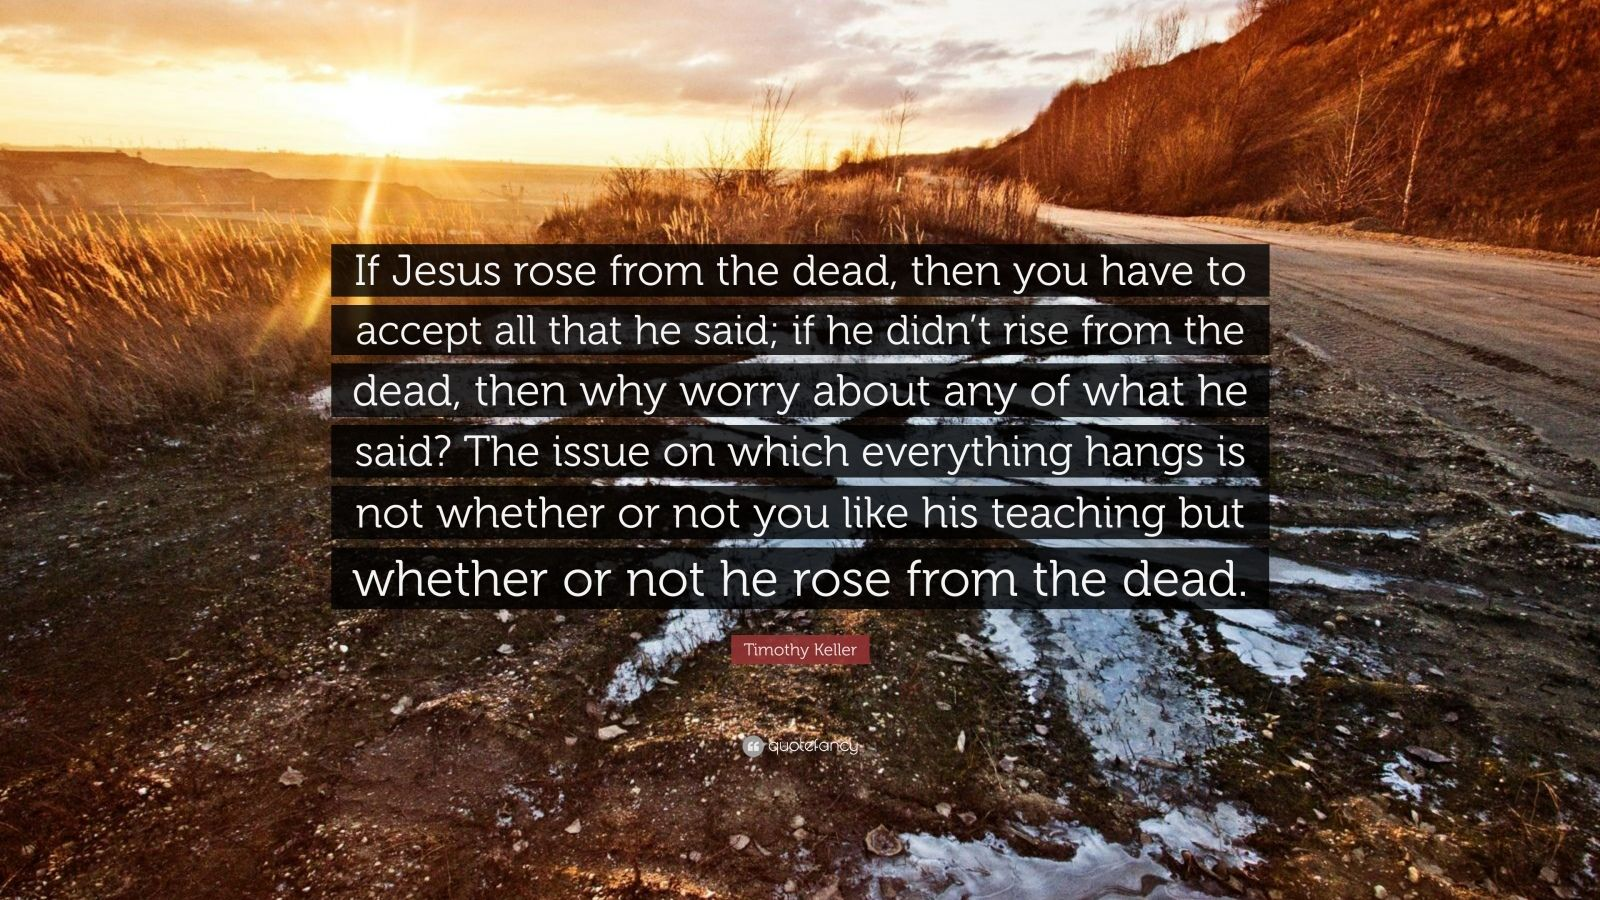 """Timothy Keller Quote: """"If Jesus rose from the dead, then you have to accept all that he said; if he didn't rise from the dead, then why worry about any of what he said? The issue on which everything hangs is not whether or not you like his teaching but whether or not he rose from the dead."""""""